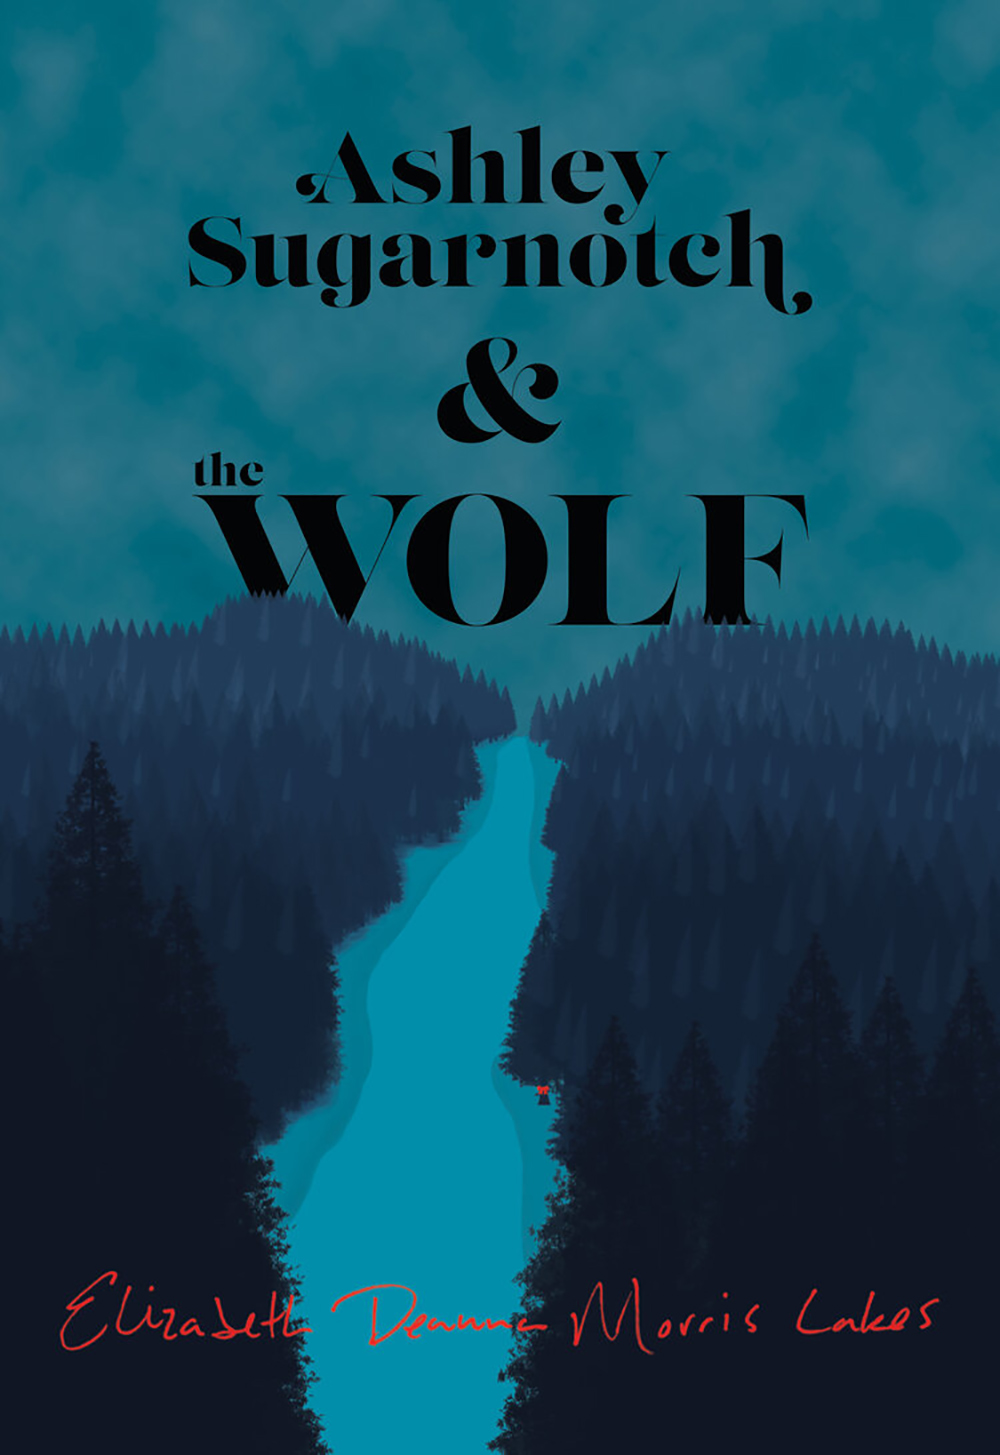 Ashley Sugarnotch & the Wolf